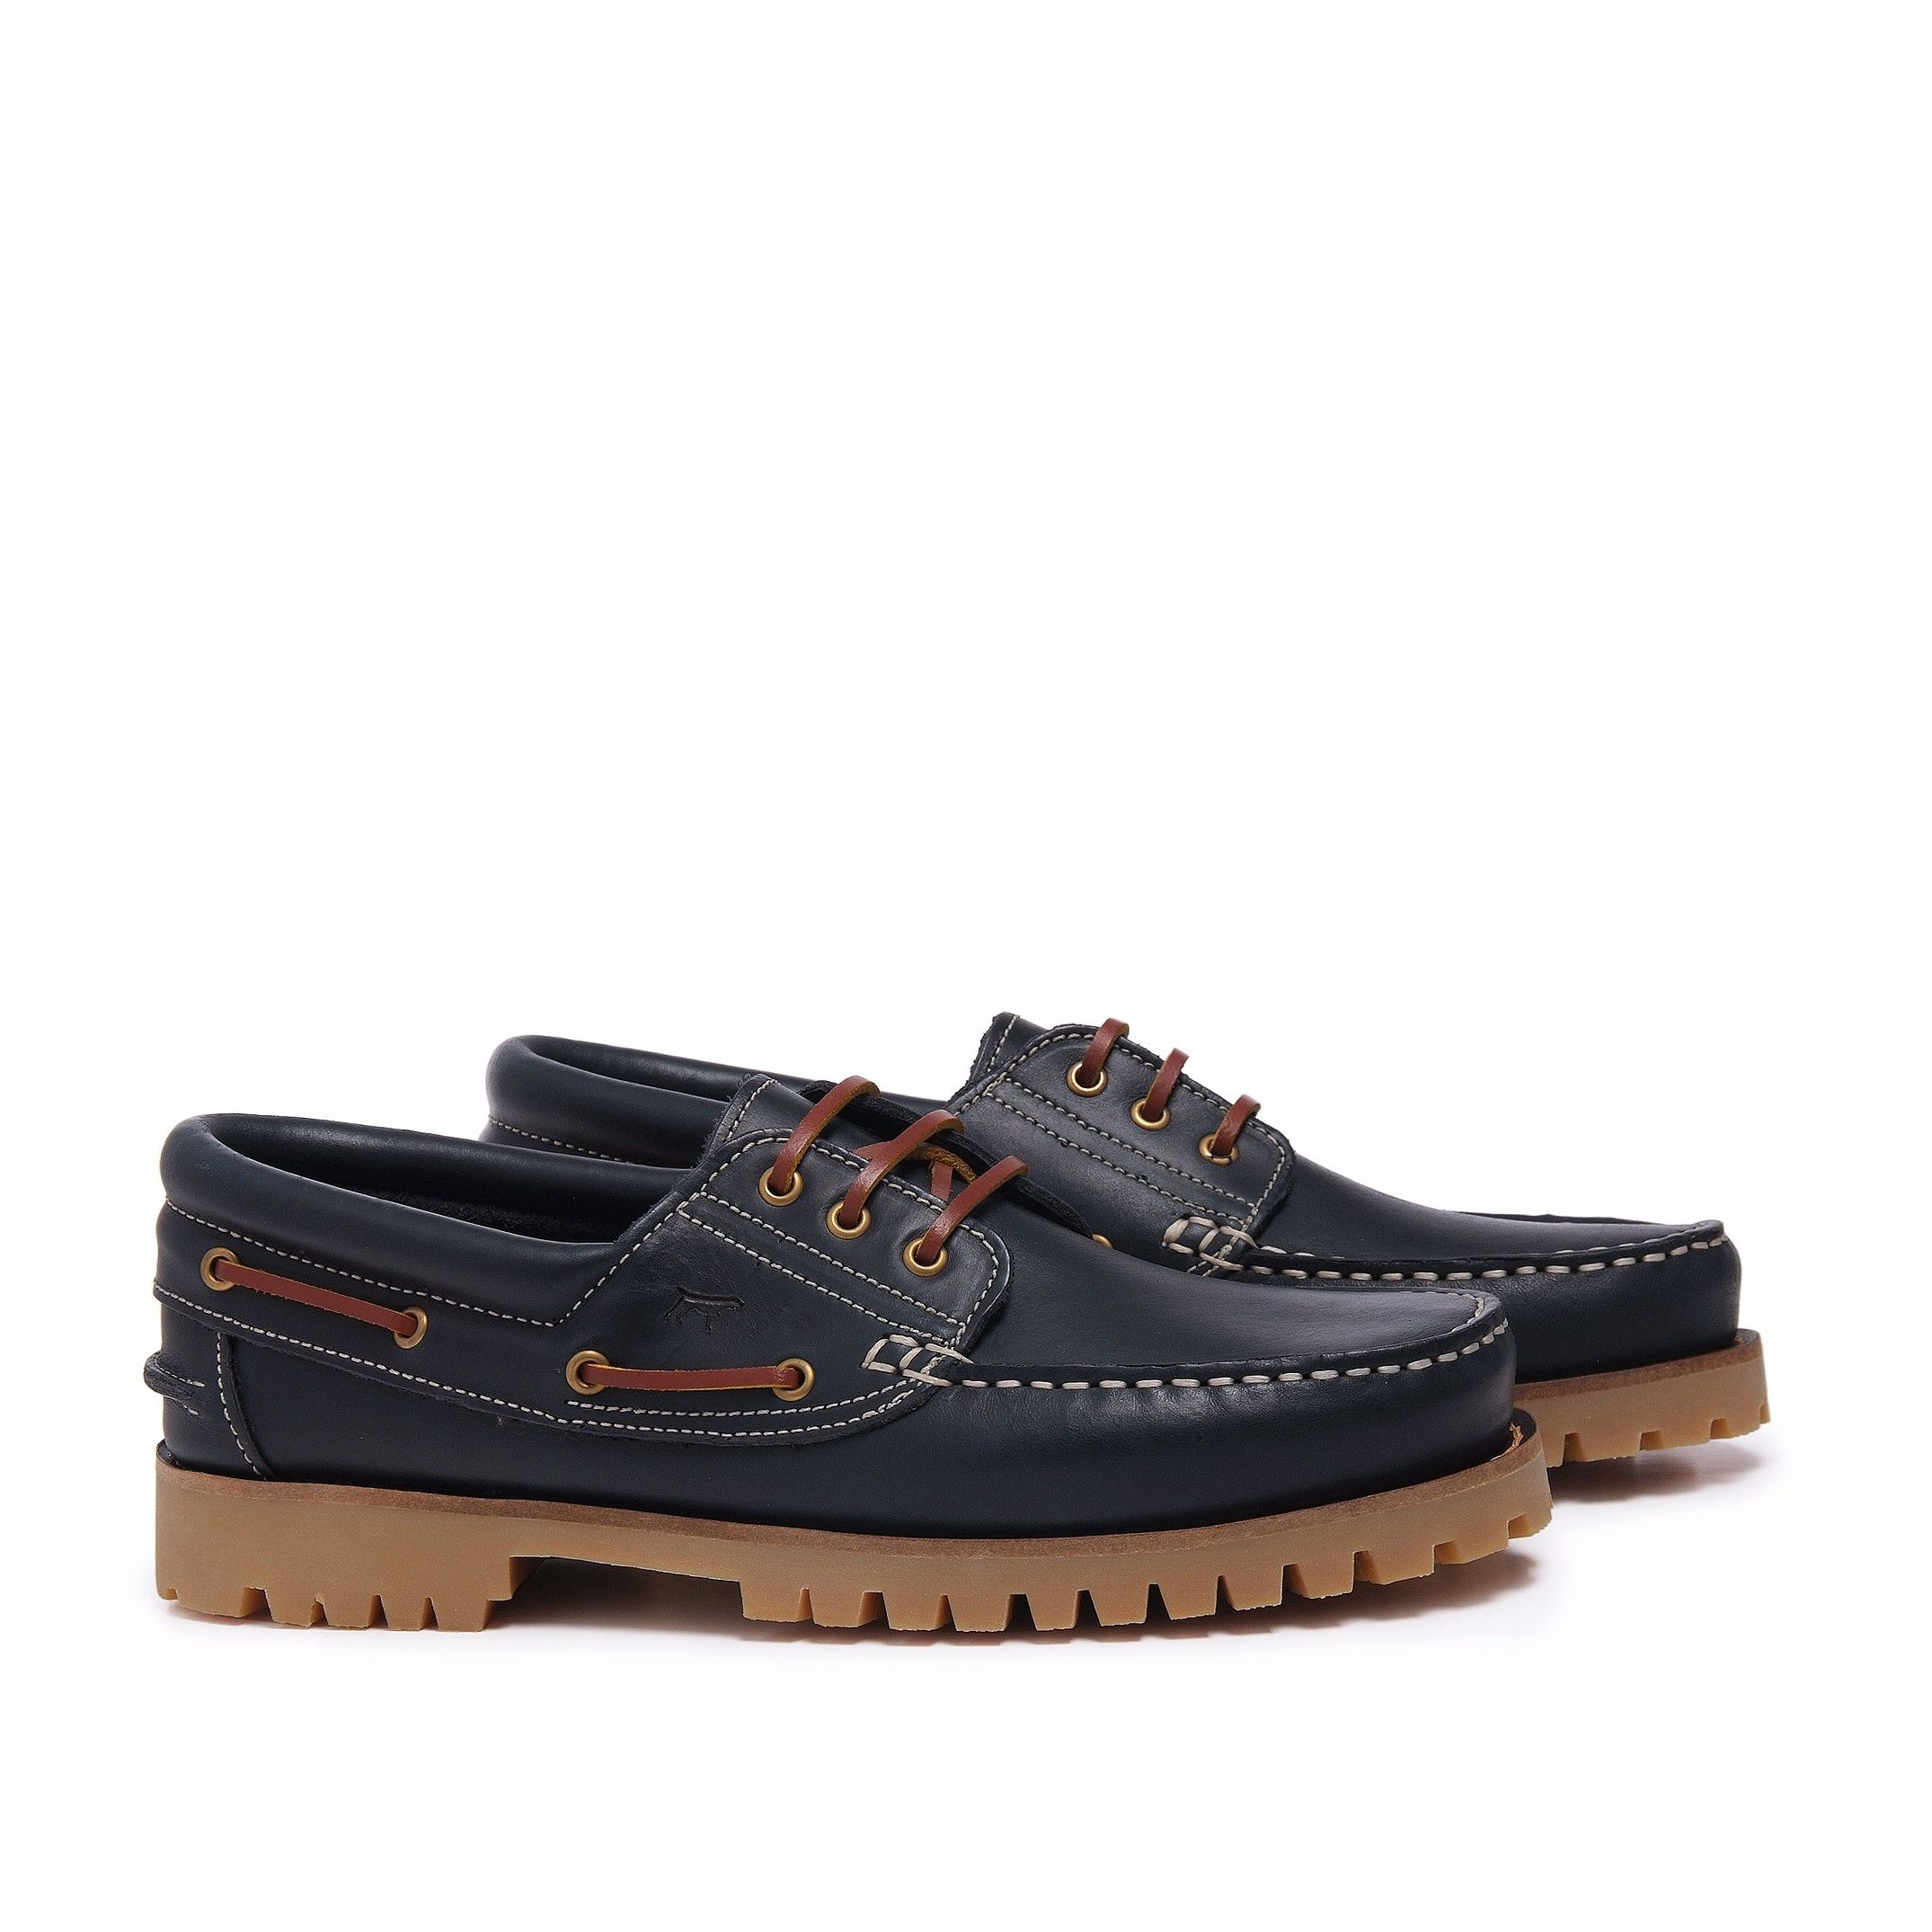 Castellanísimos Leather Navy Blue Moccasins Boat Shoes For Men